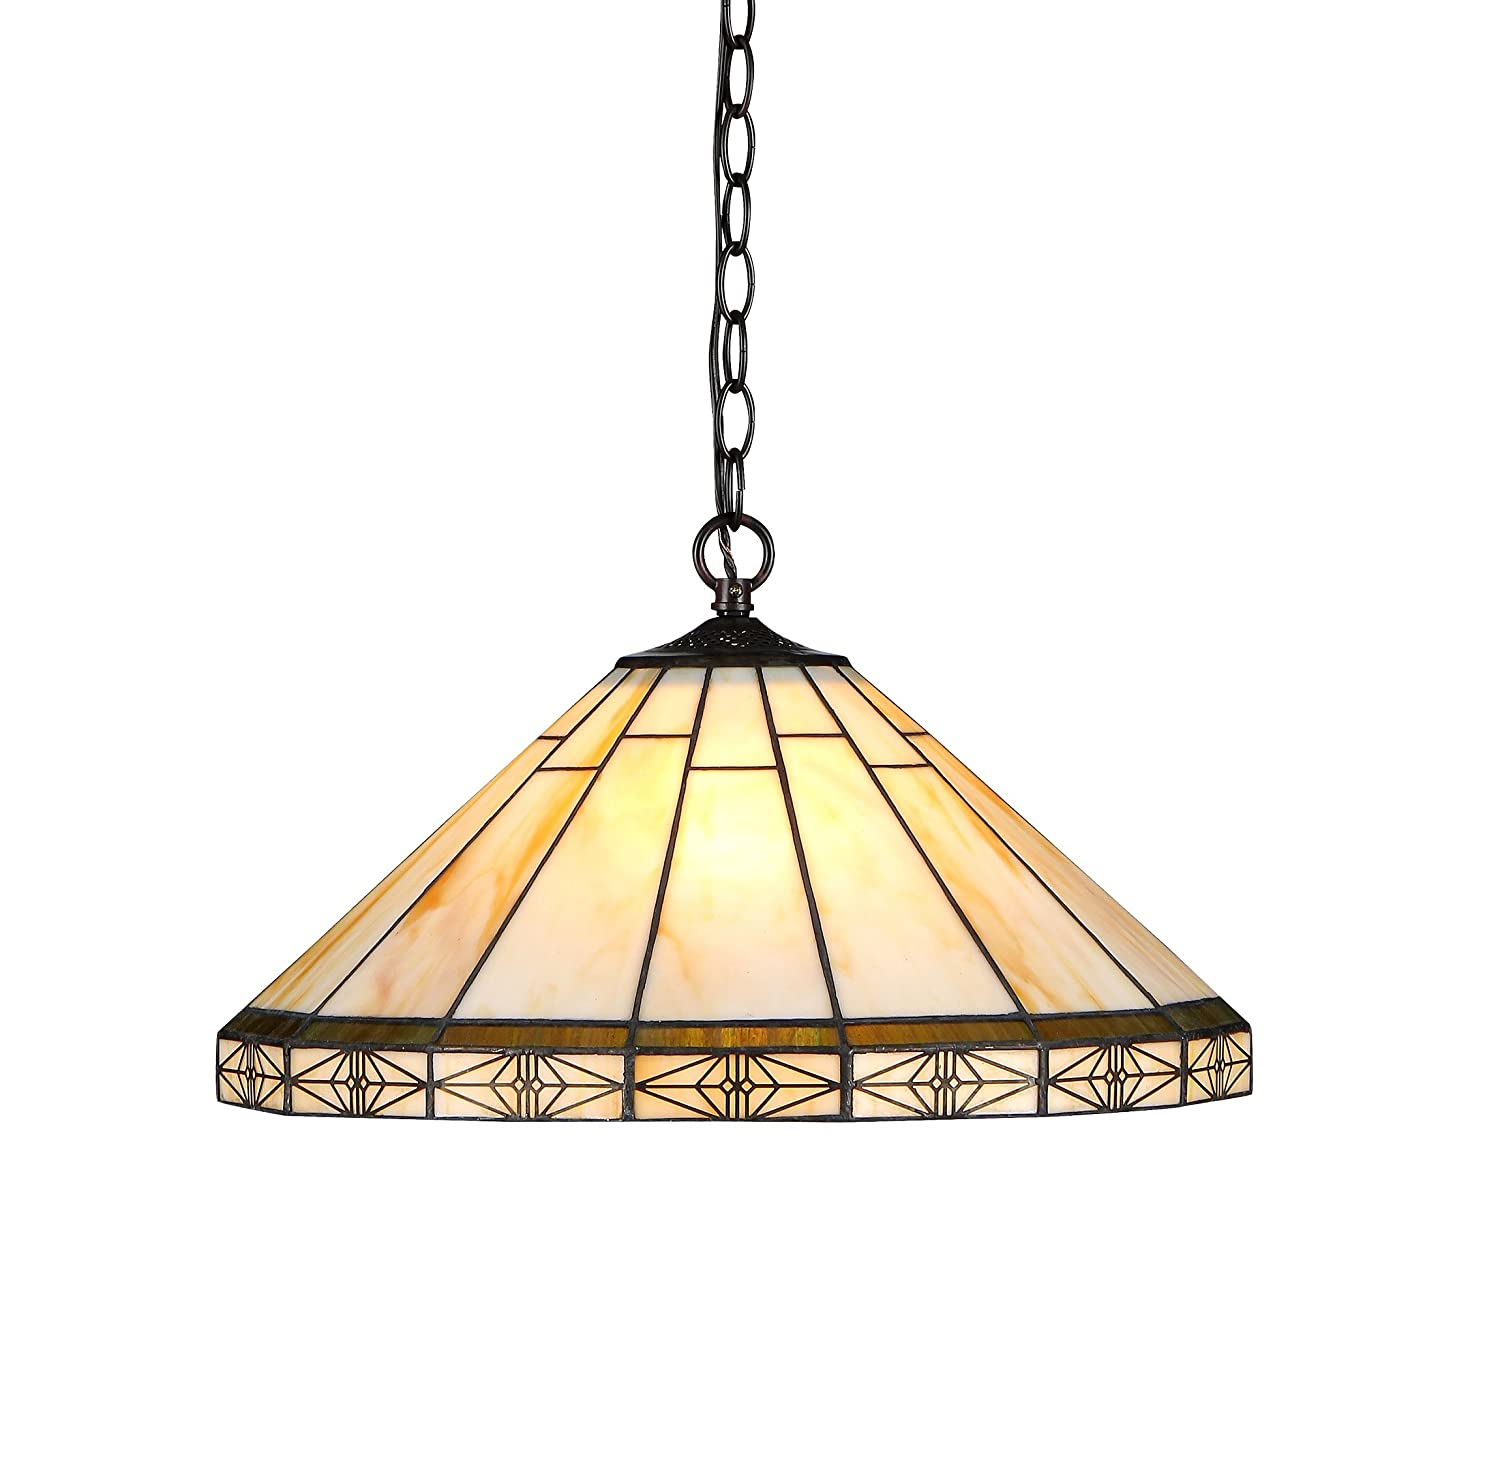 "Chloe Lighting CH31315MI18-DH2 Belle Tiffany-Style Mission 2-Light Ceiling Pendant with Shade, 8.7 x 18.1 x 18.1"", Bronze"